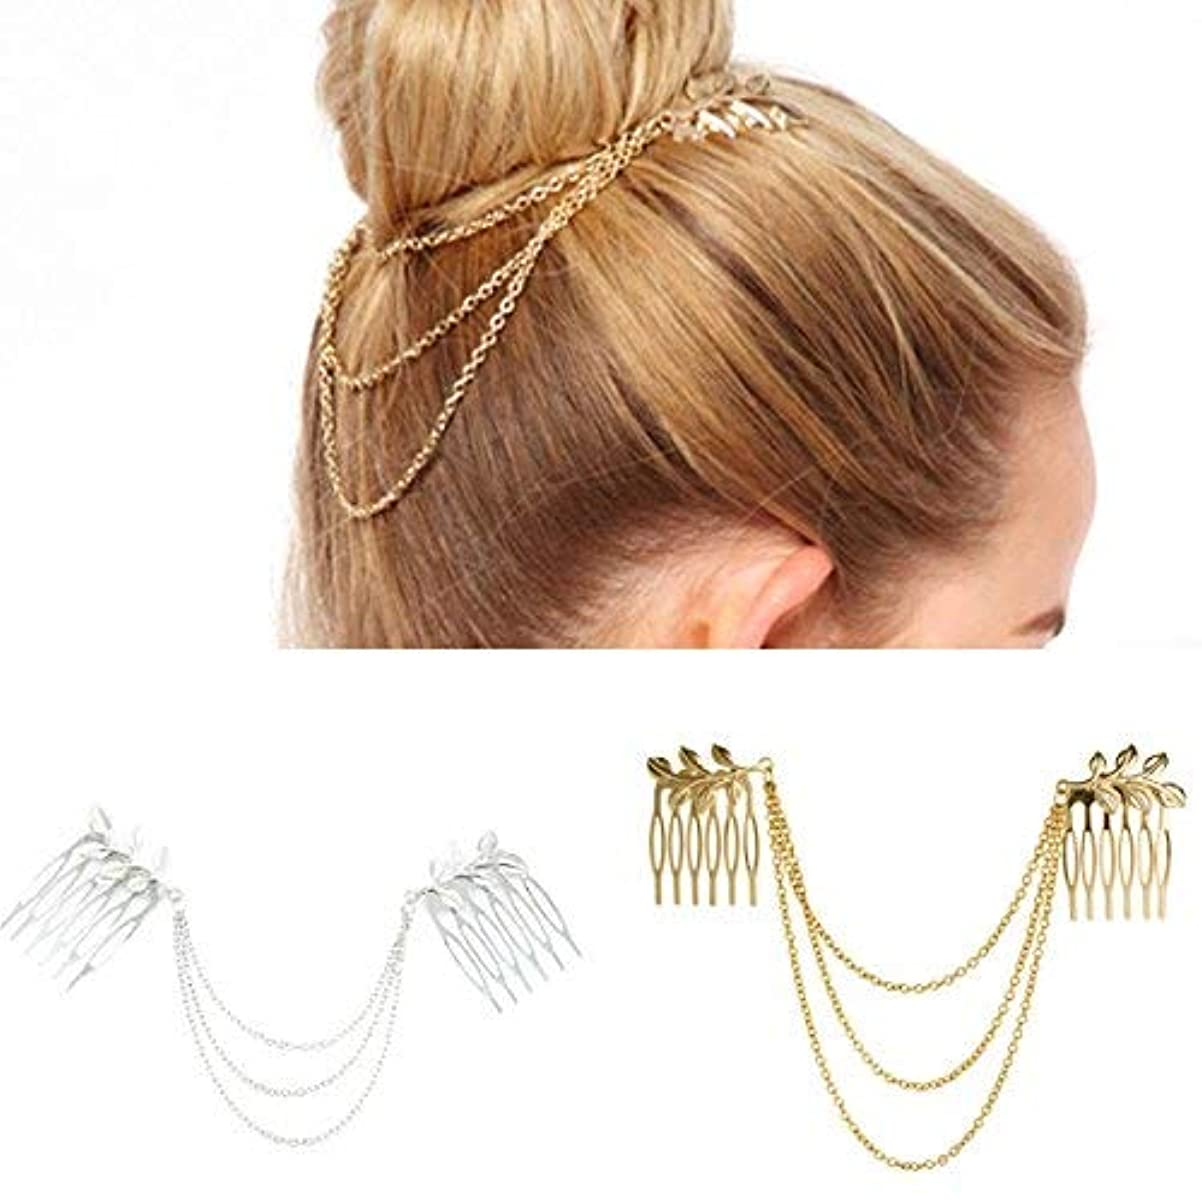 起きてティームバイオリニストNumblartd 2 Pcs Women BOHO Chic Metal Leaf Chain Tassel Headband Hair Comb - Fashion Fringe Hair Clip Pins Hairpin...